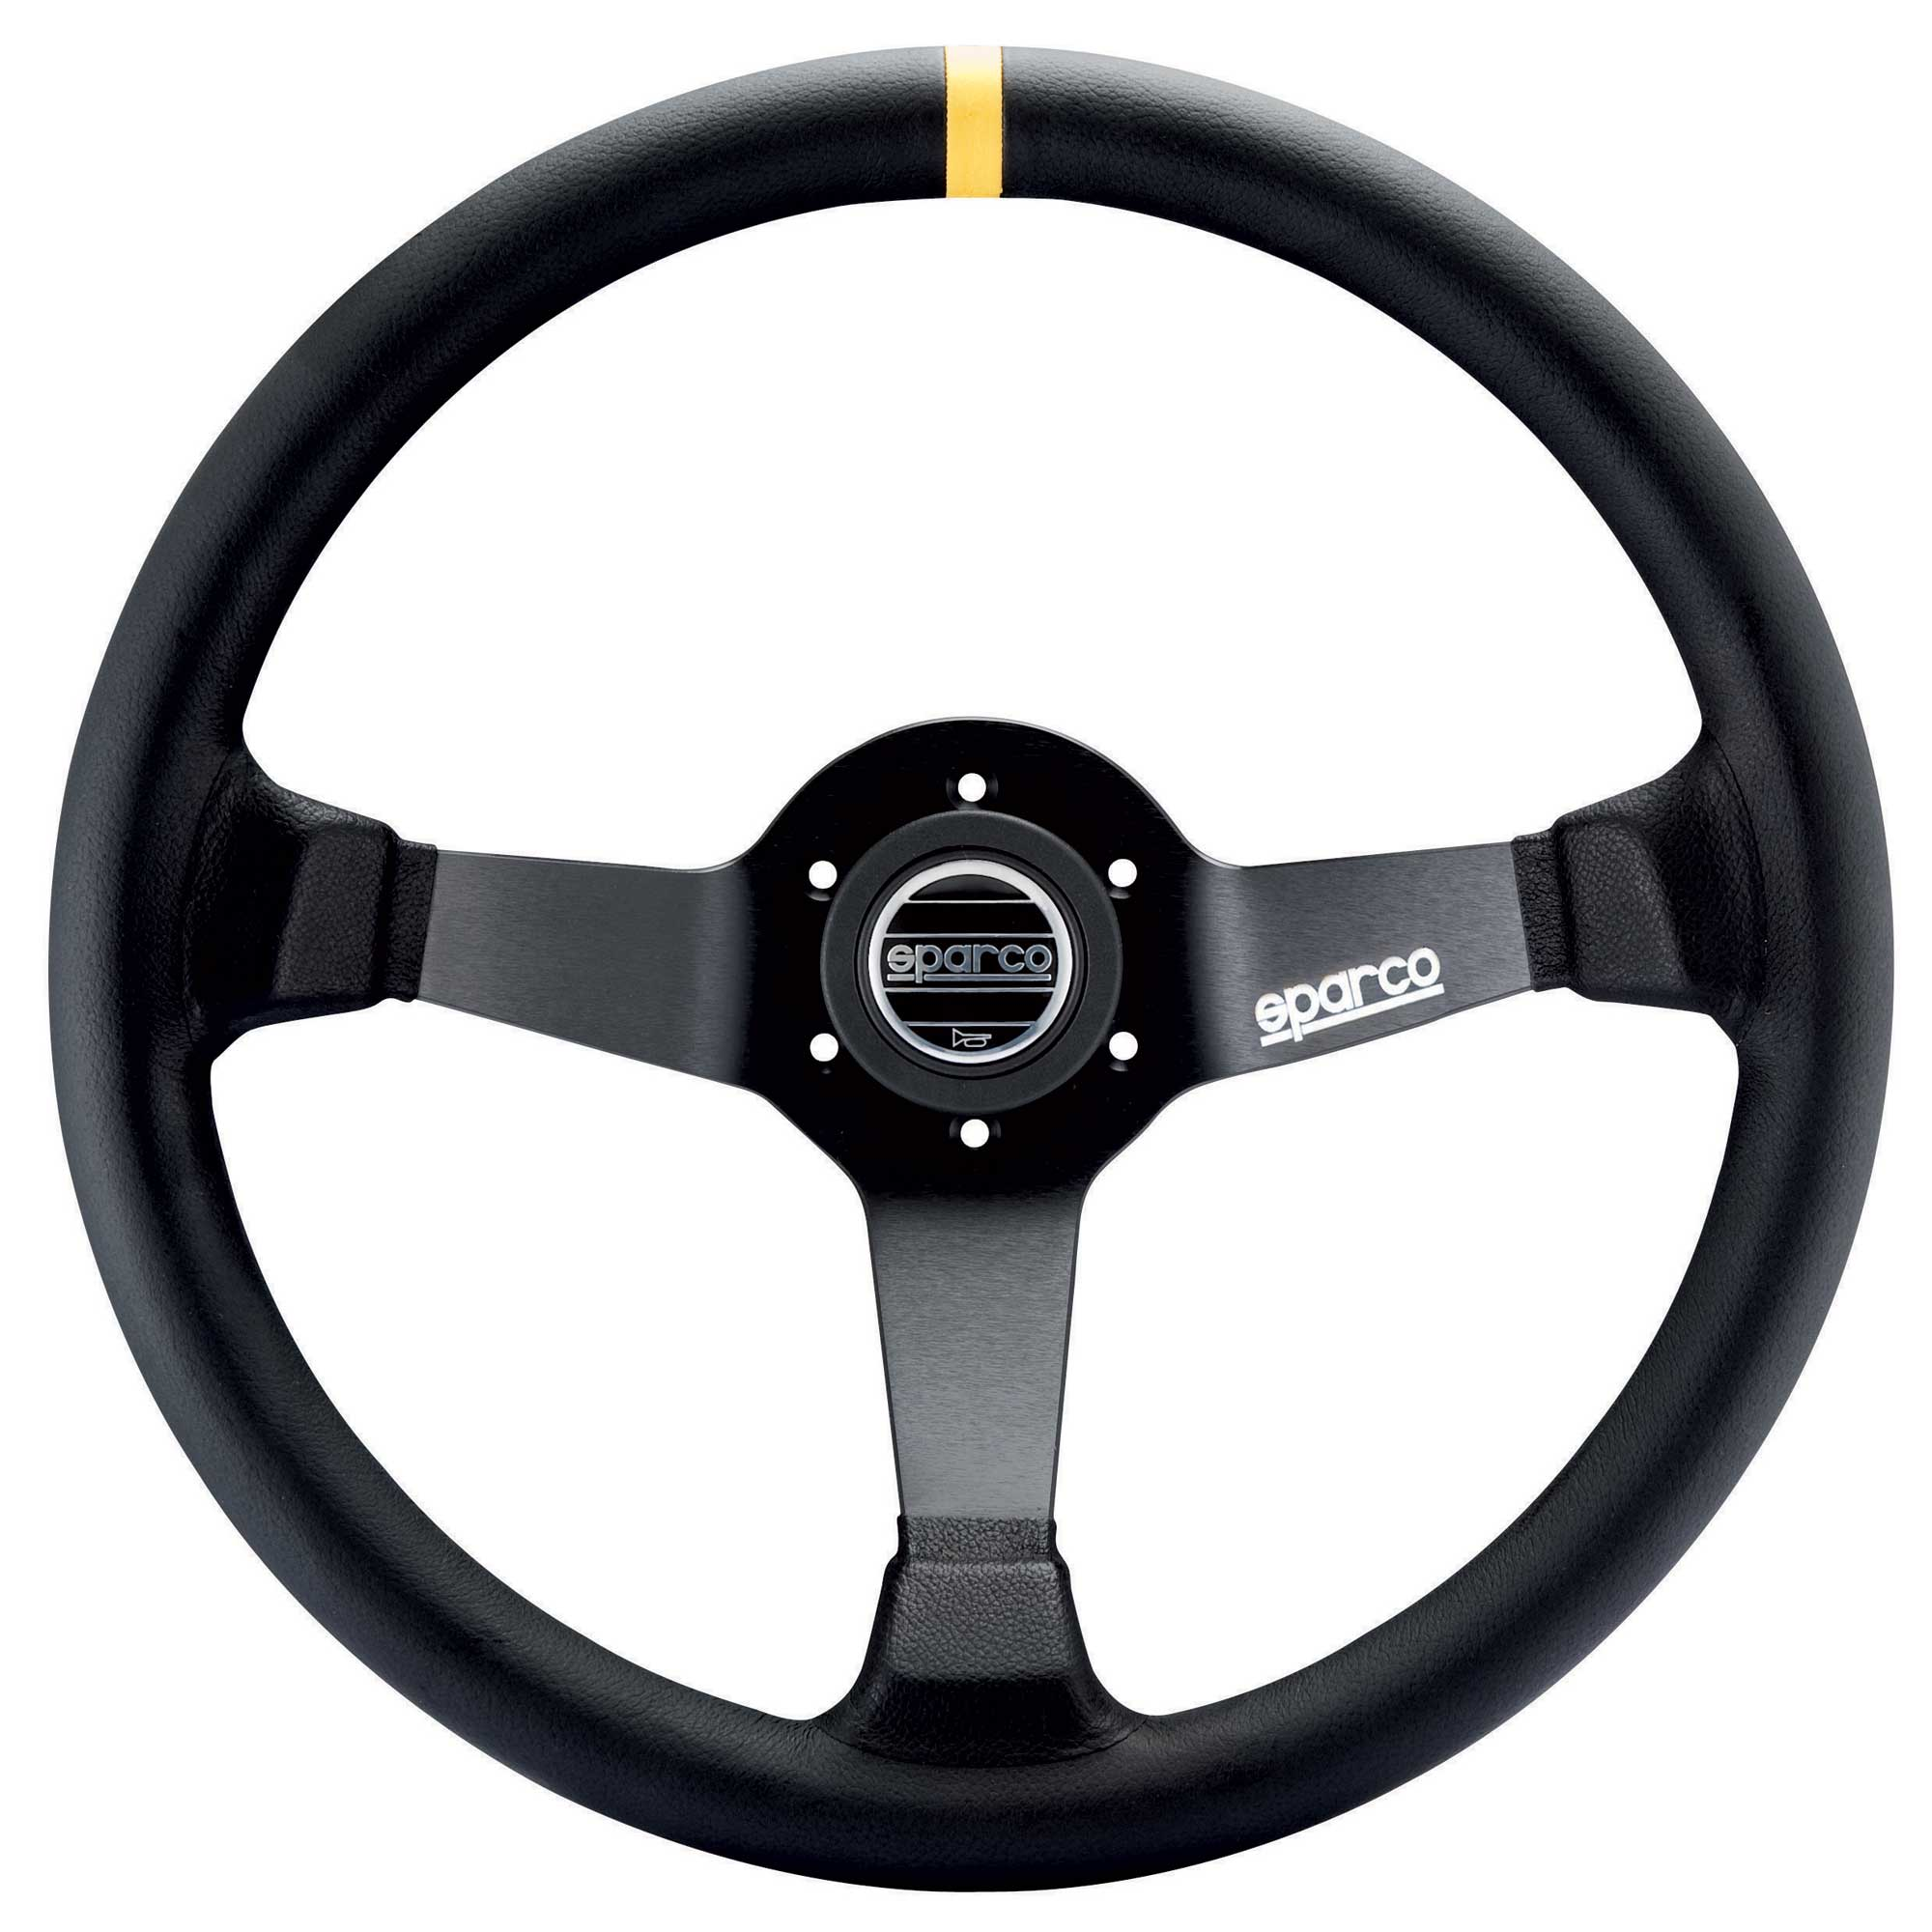 Sparco 325 Steering Wheel | Demon Tweeks